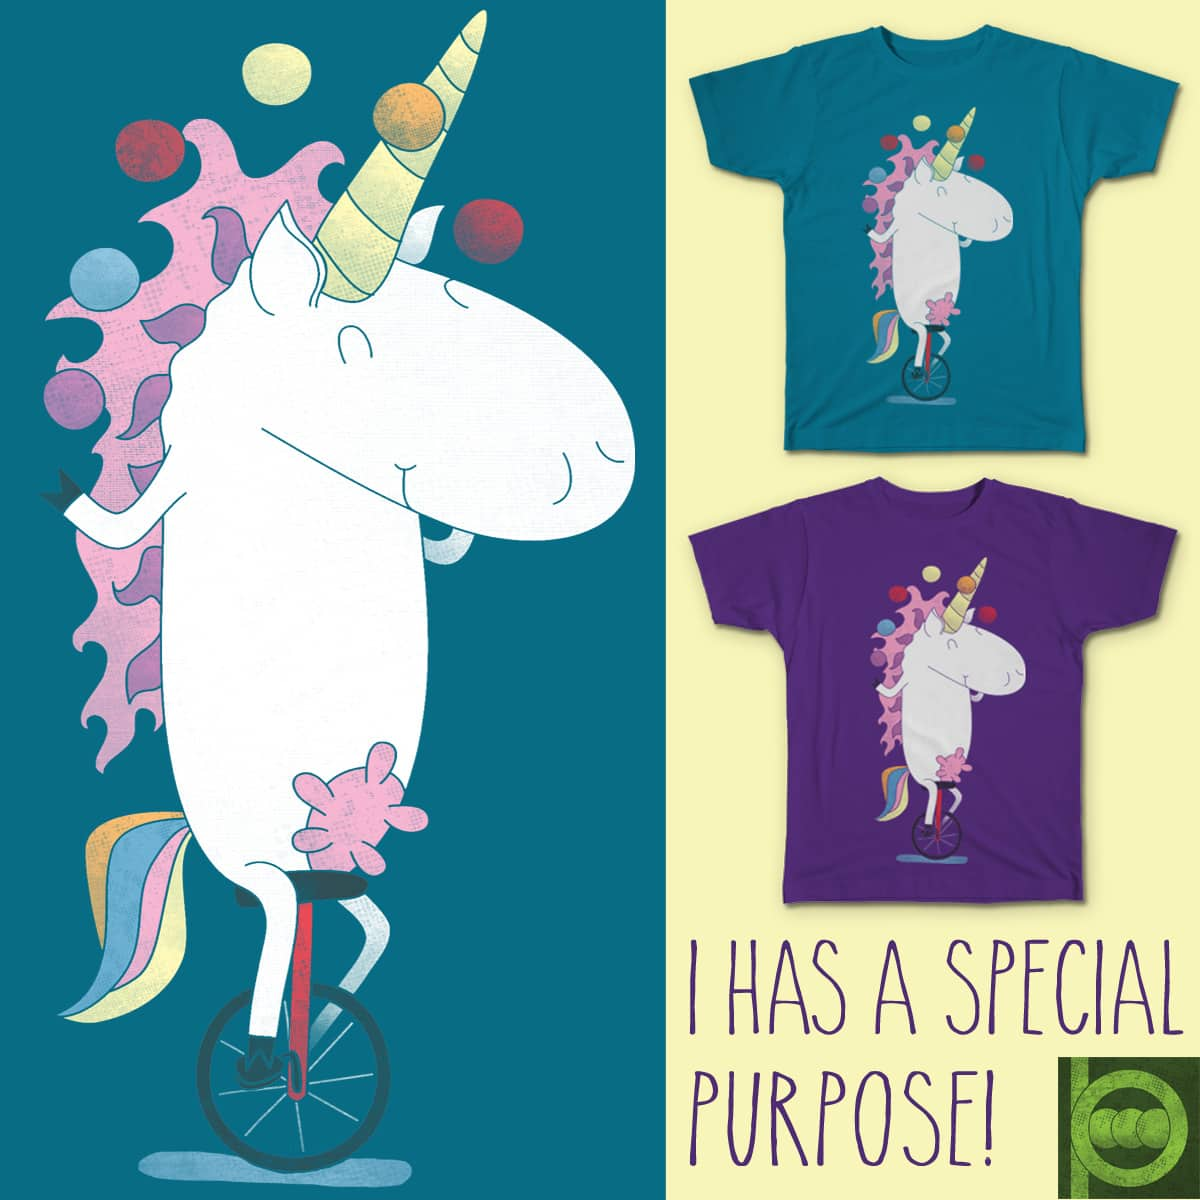 I HAS A SPECIAL PURPOSE! by BeanePod on Threadless